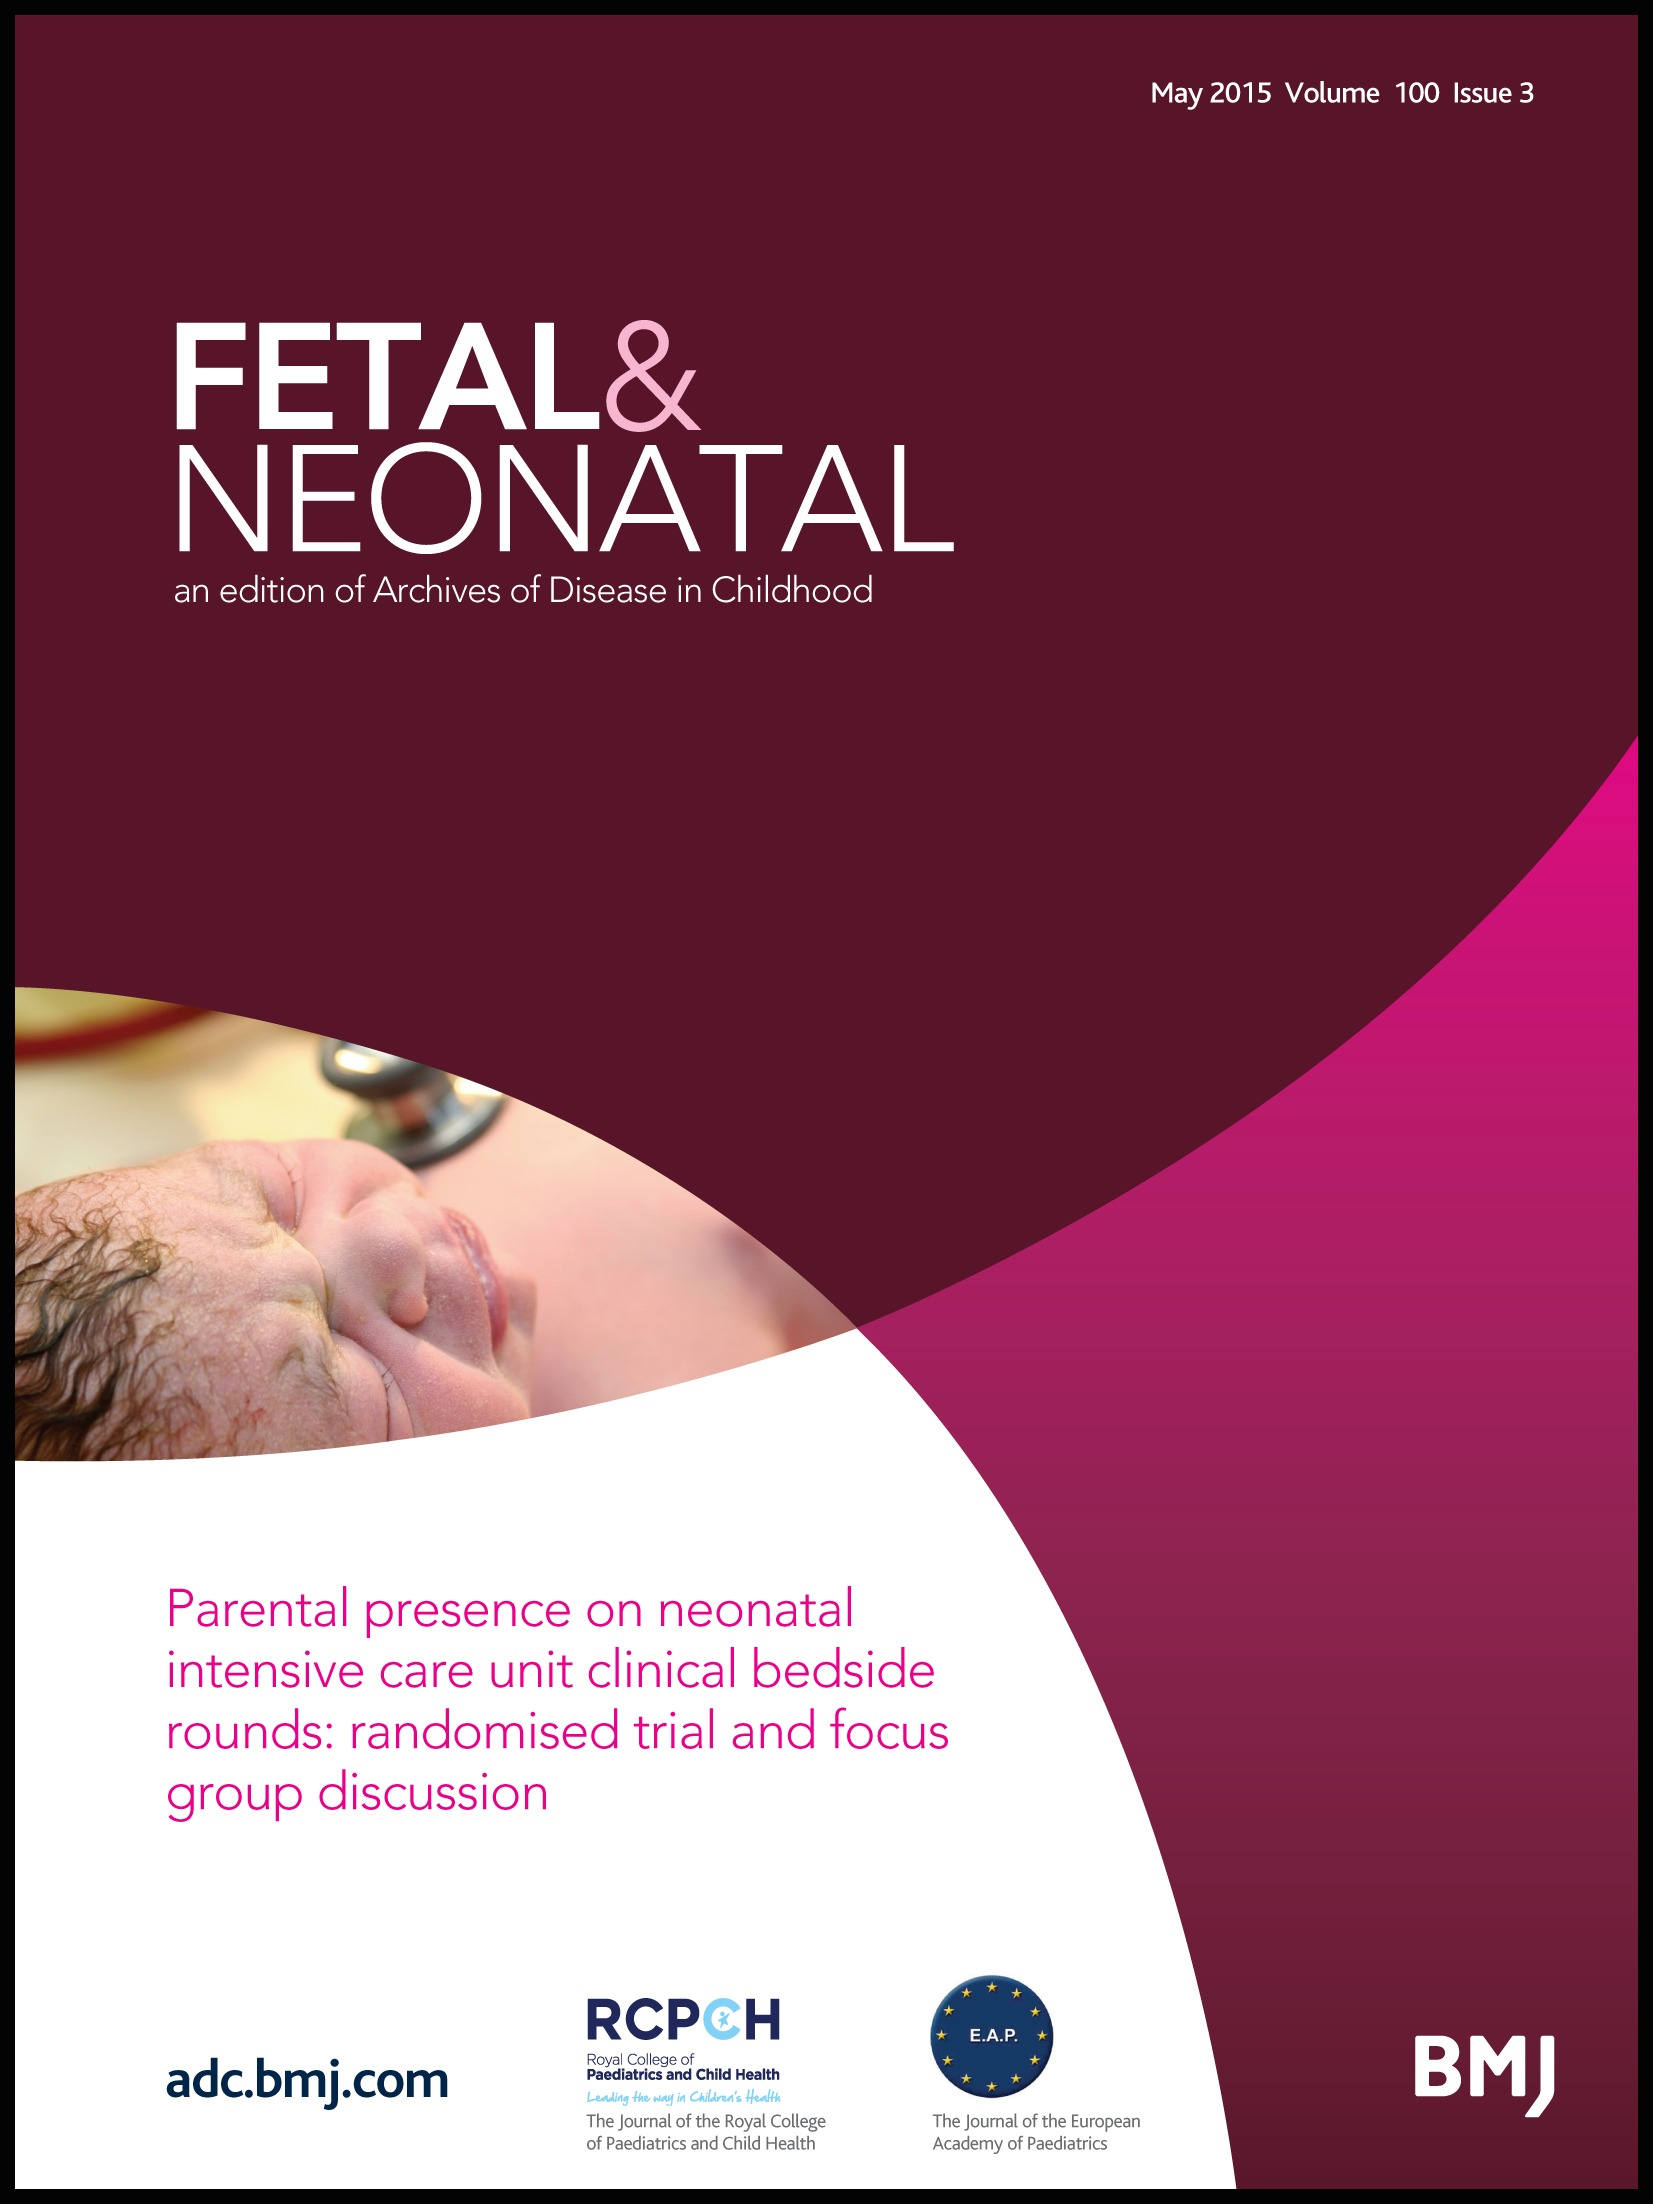 Parental presence on neonatal intensive care unit clinical bedside rounds:  randomised trial and focus group discussion | ADC Fetal & Neonatal Edition